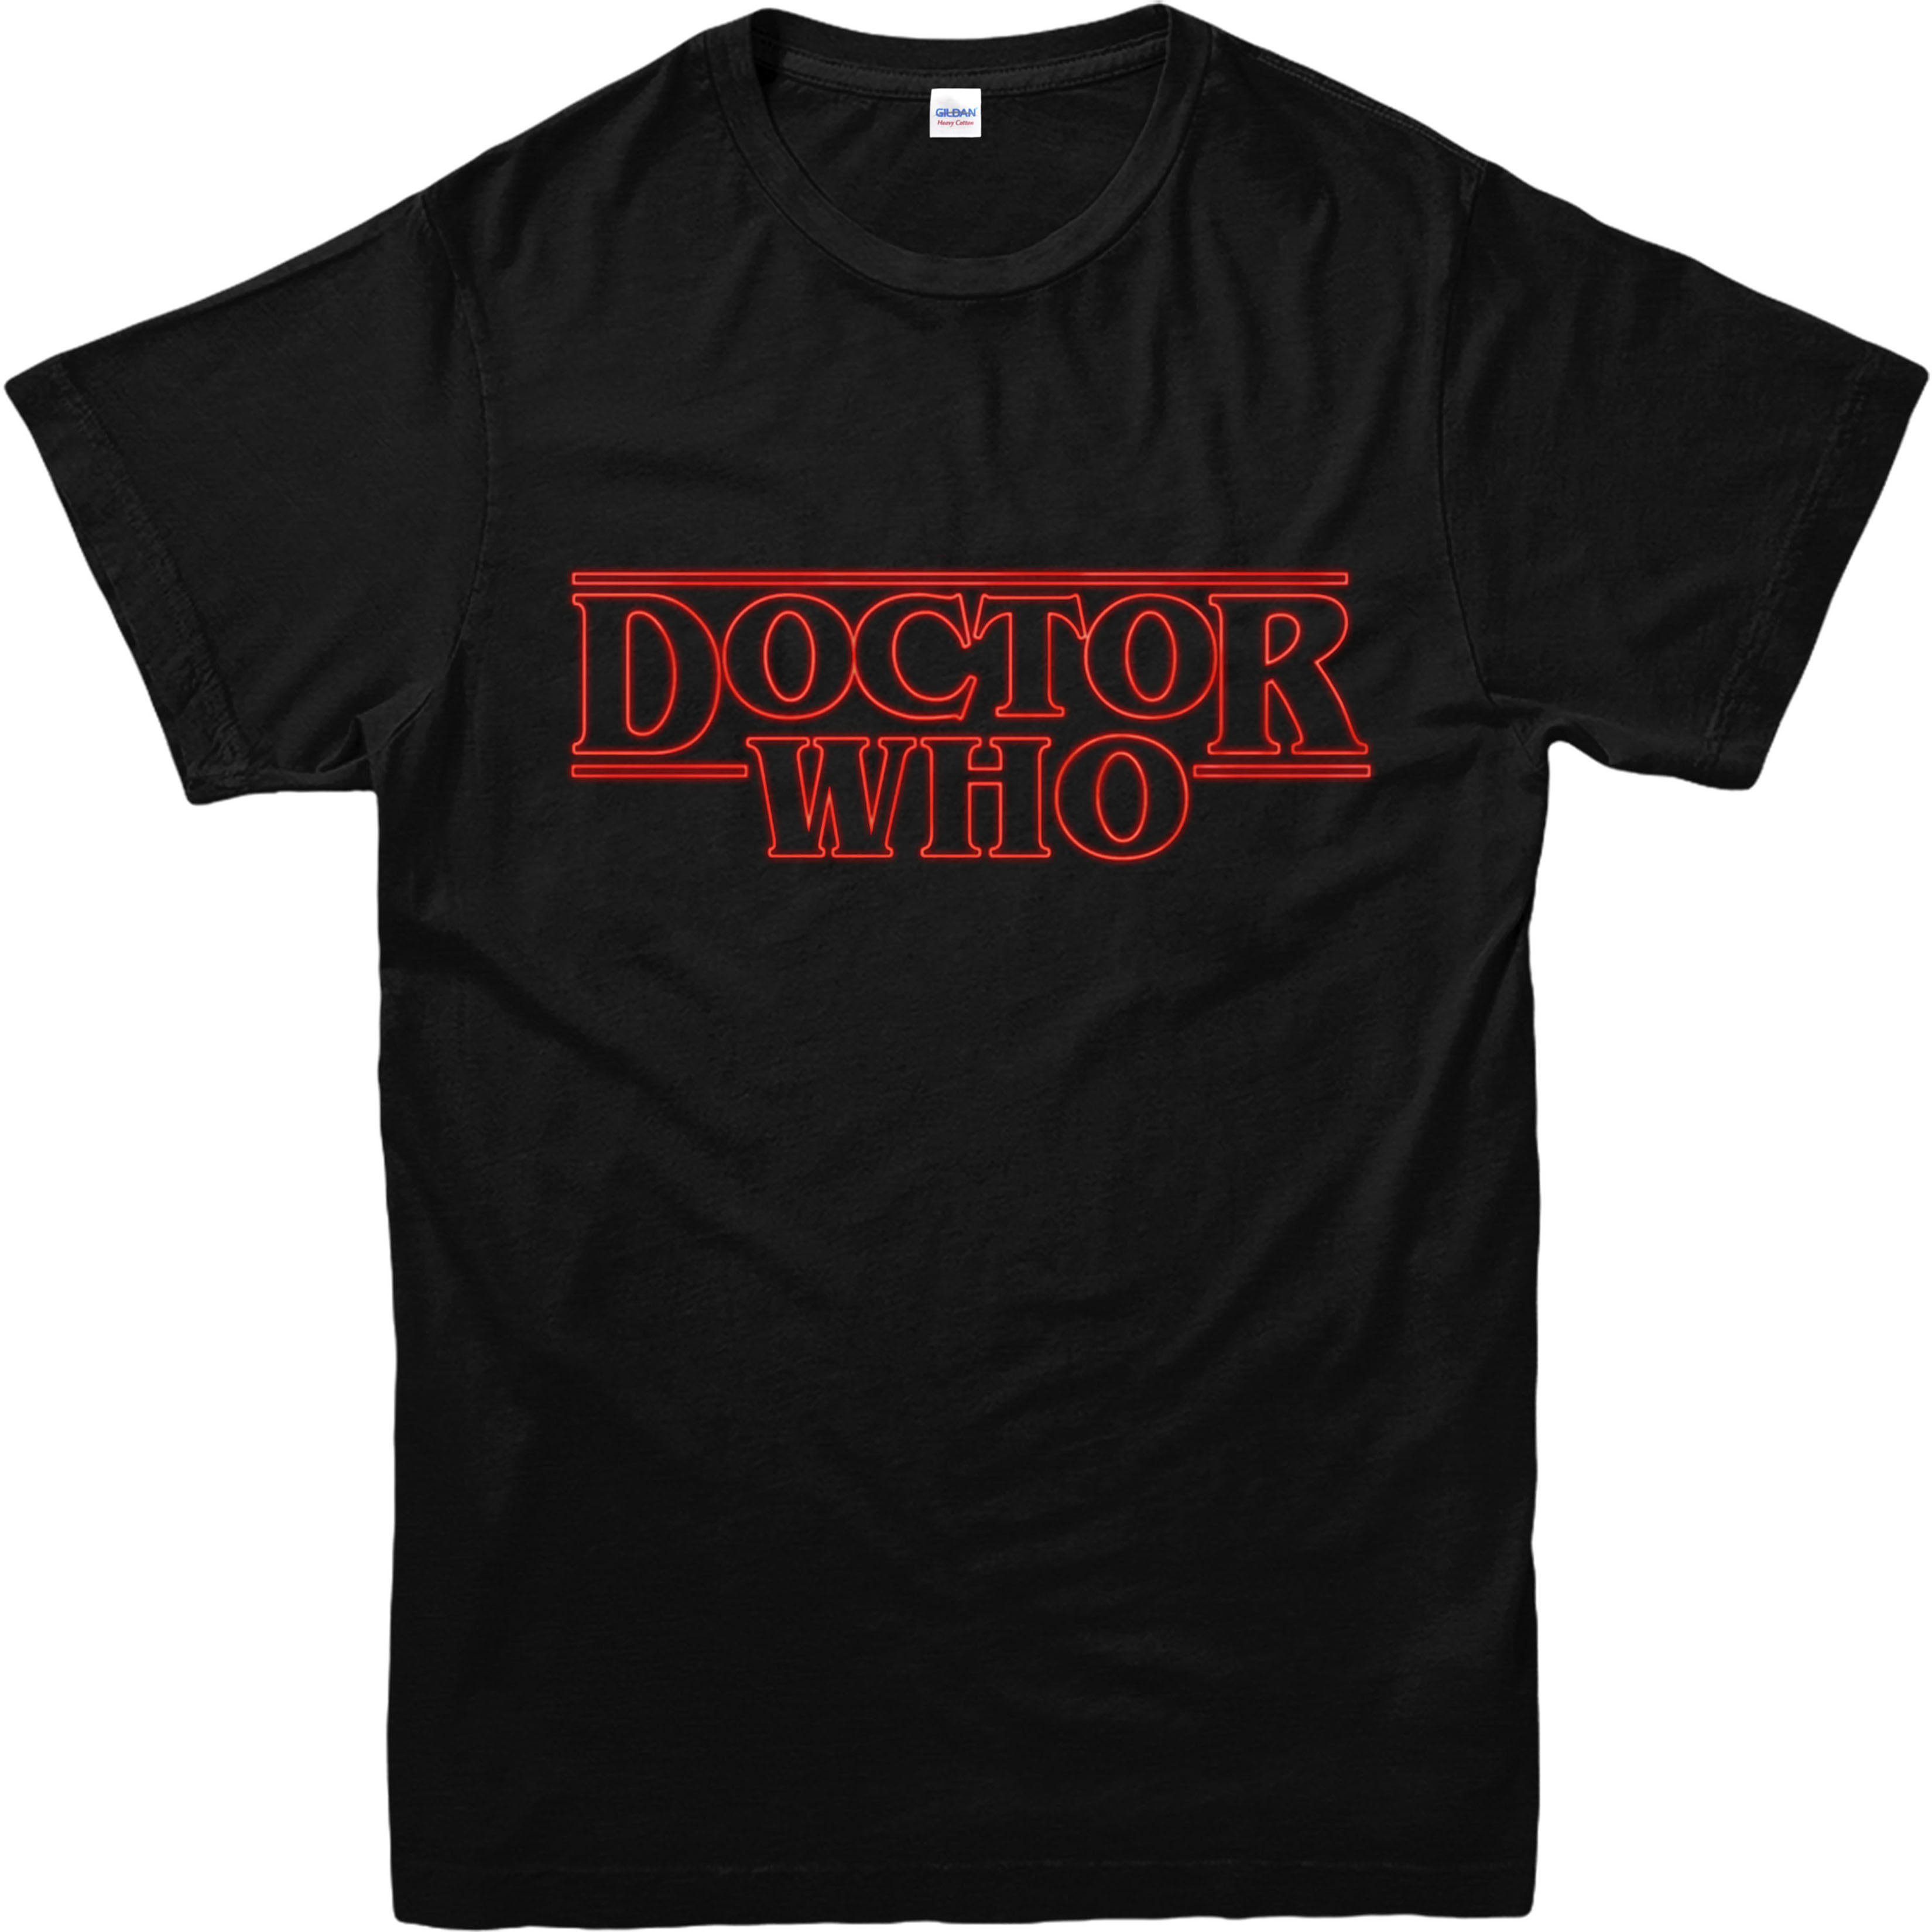 Doctor who t shirt stranger things spoof t shirt for Best quality shirts to print on